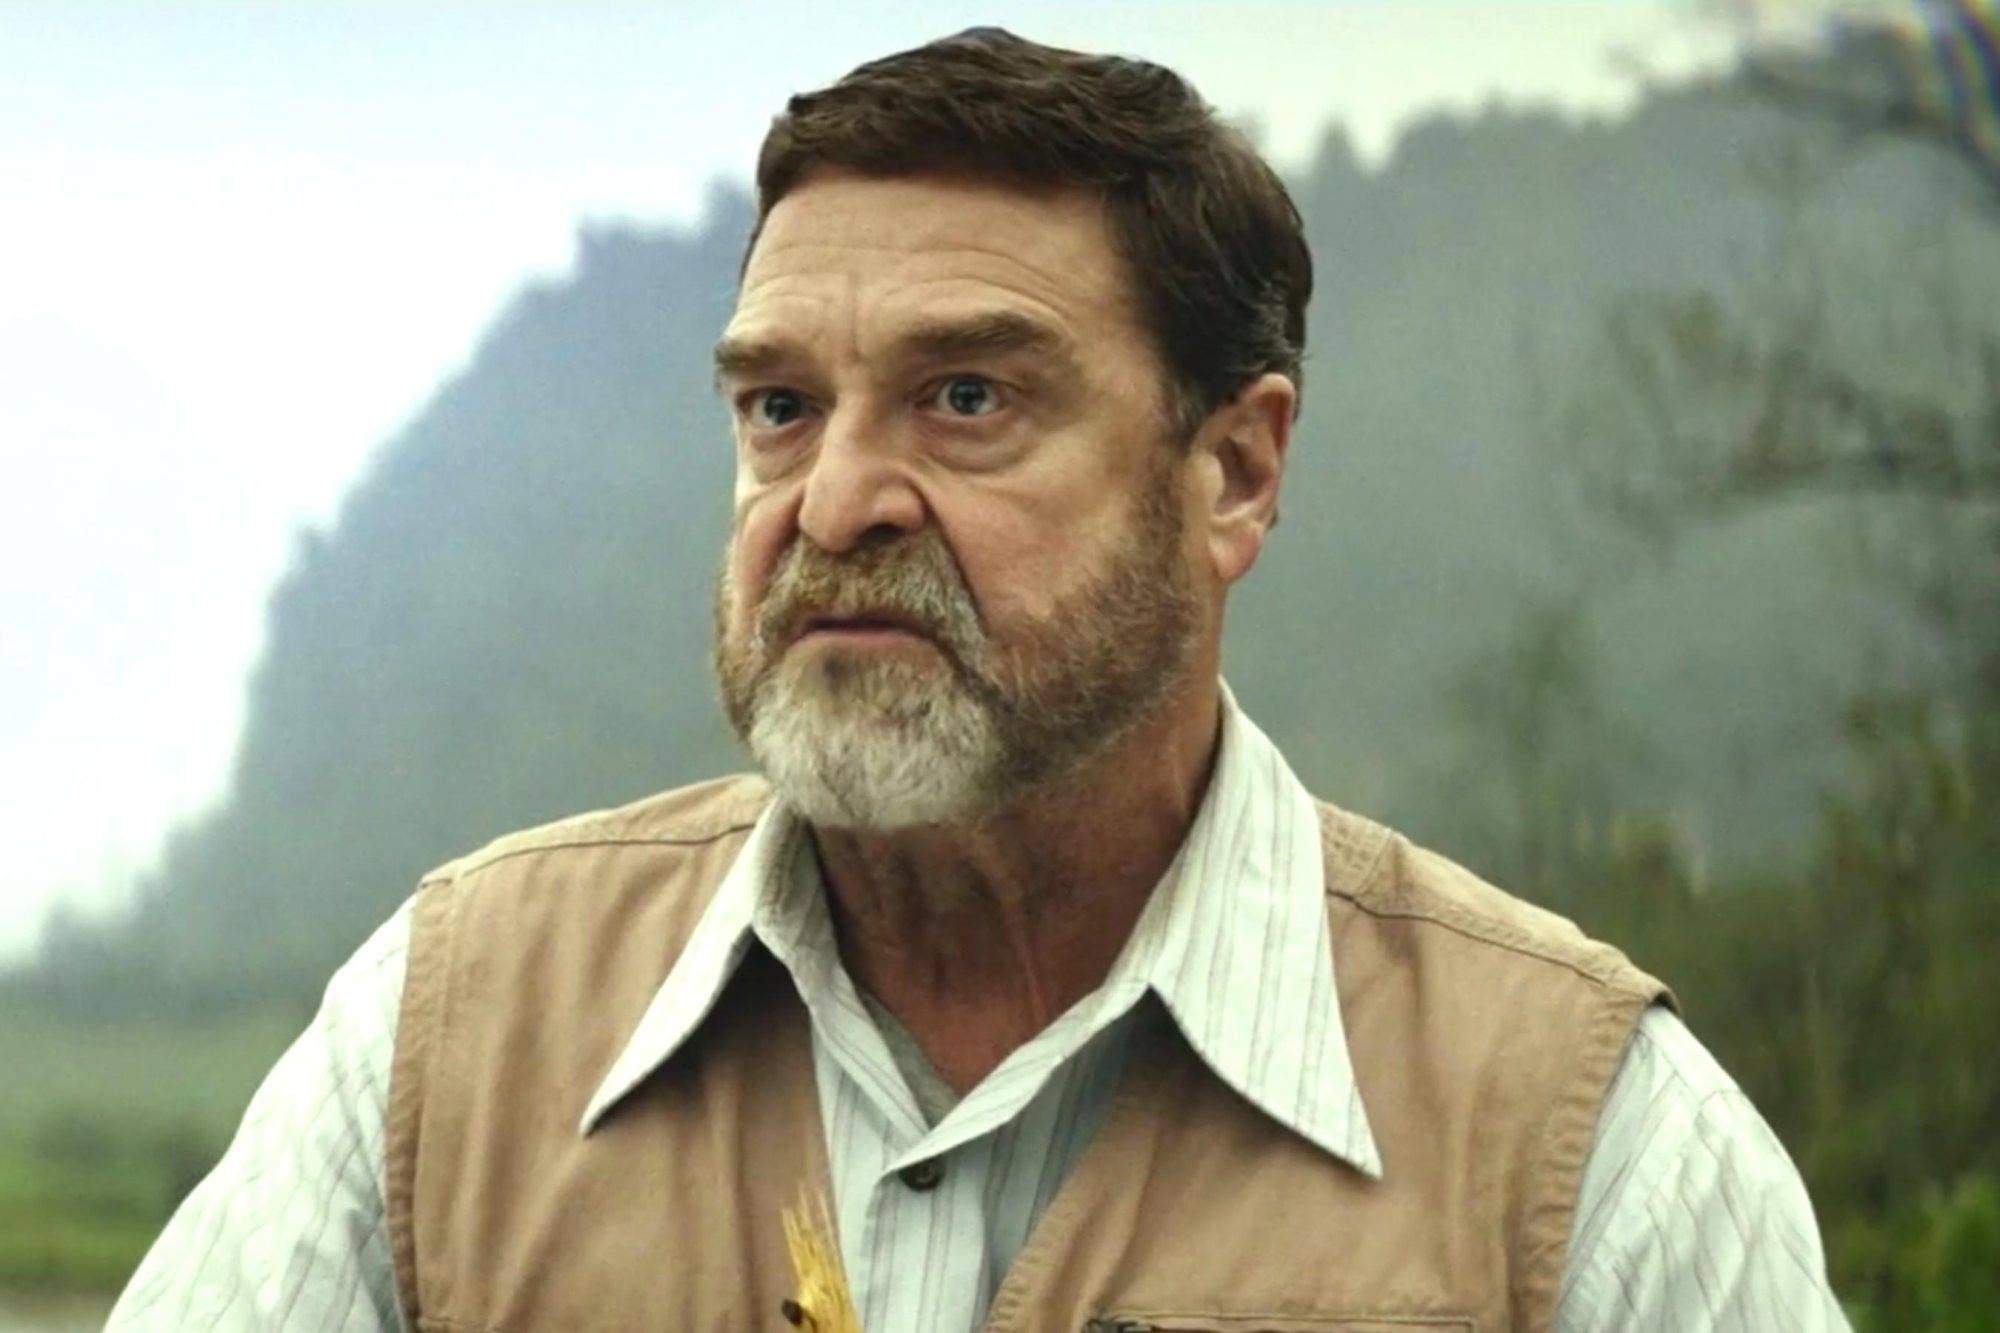 The Skull Island cast also includes John Goodman.